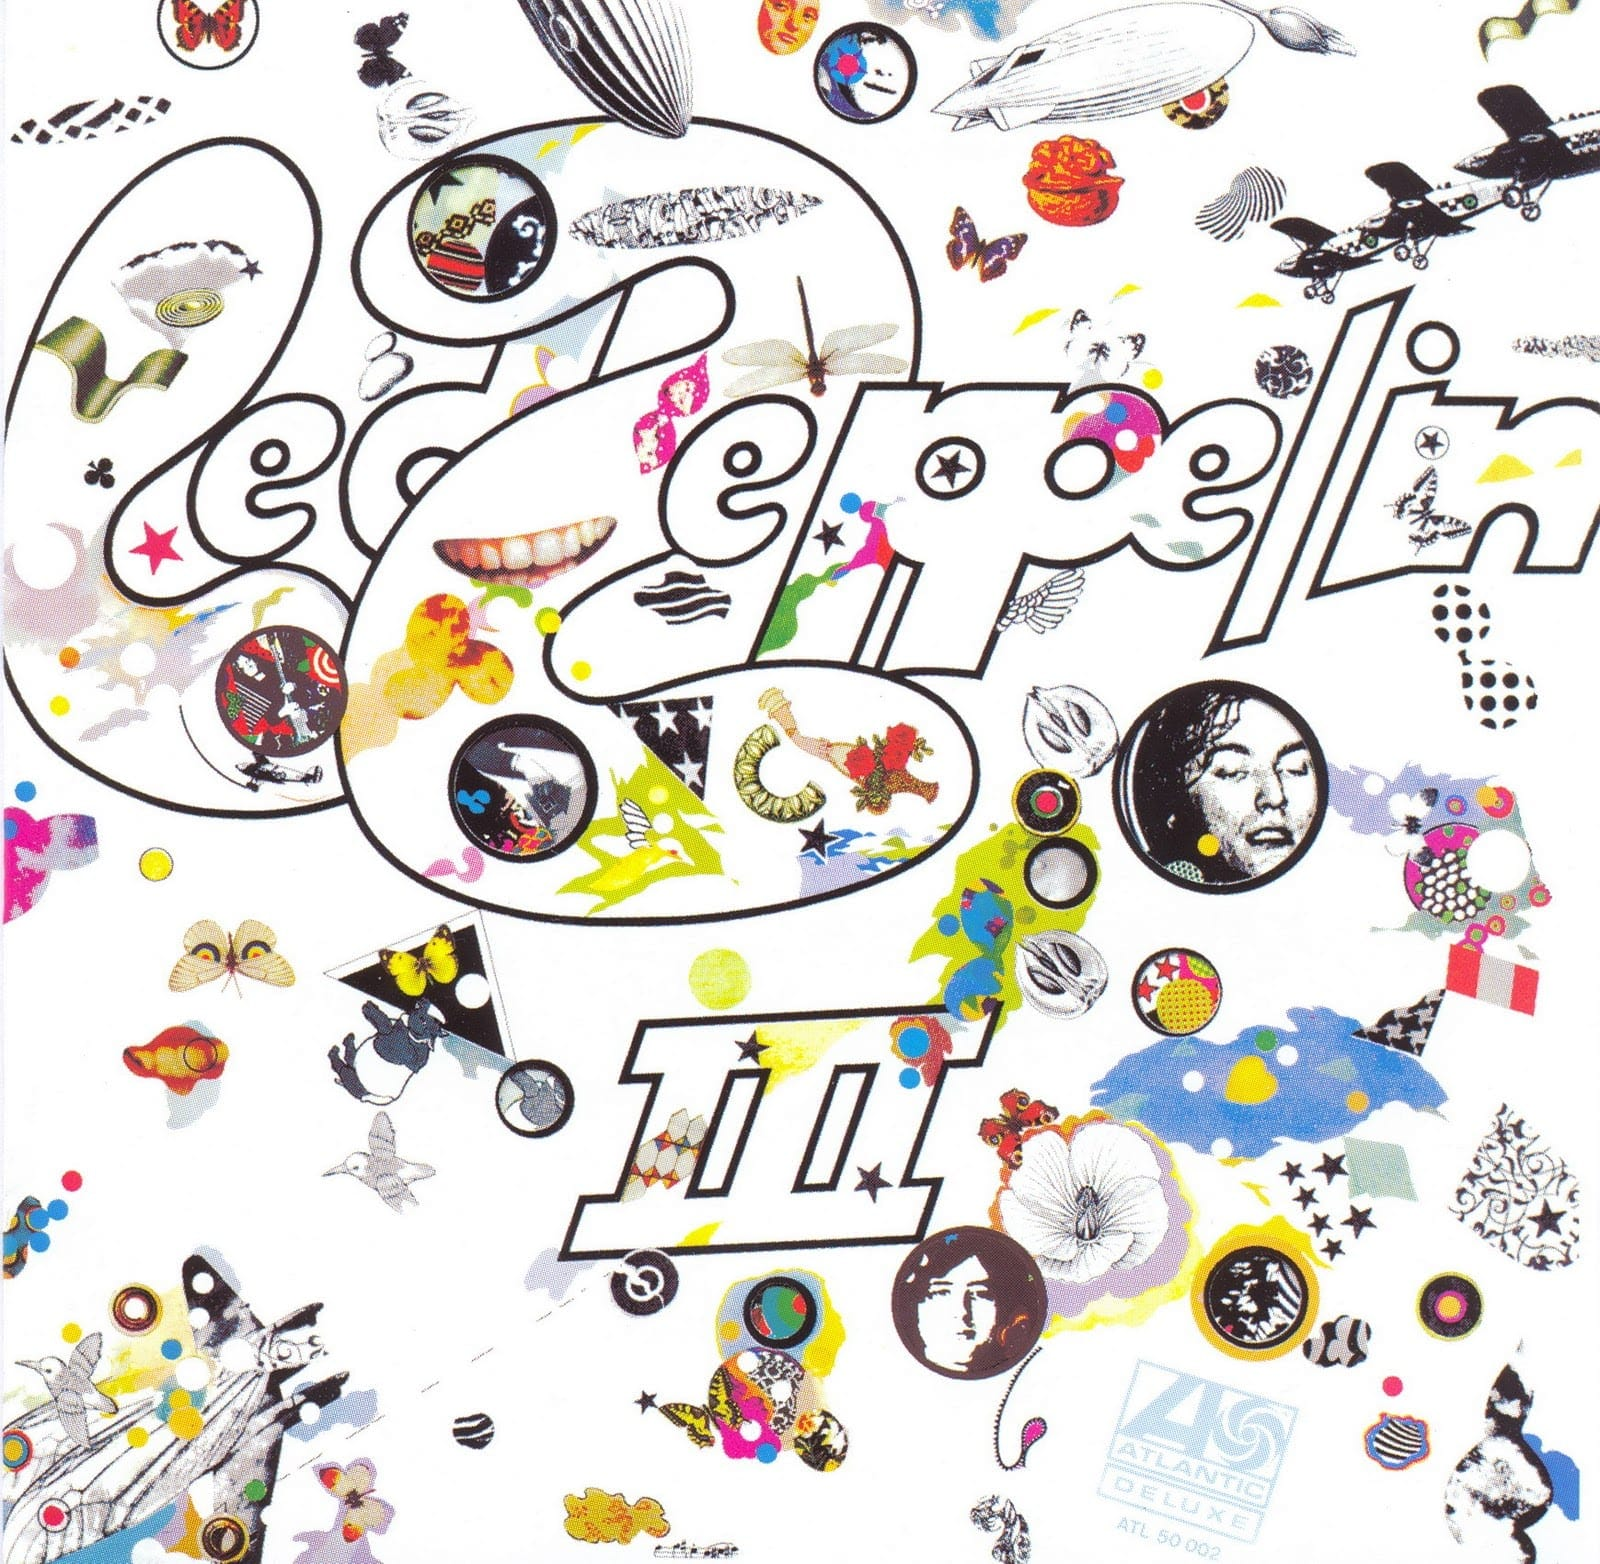 led zeppelin III album cover